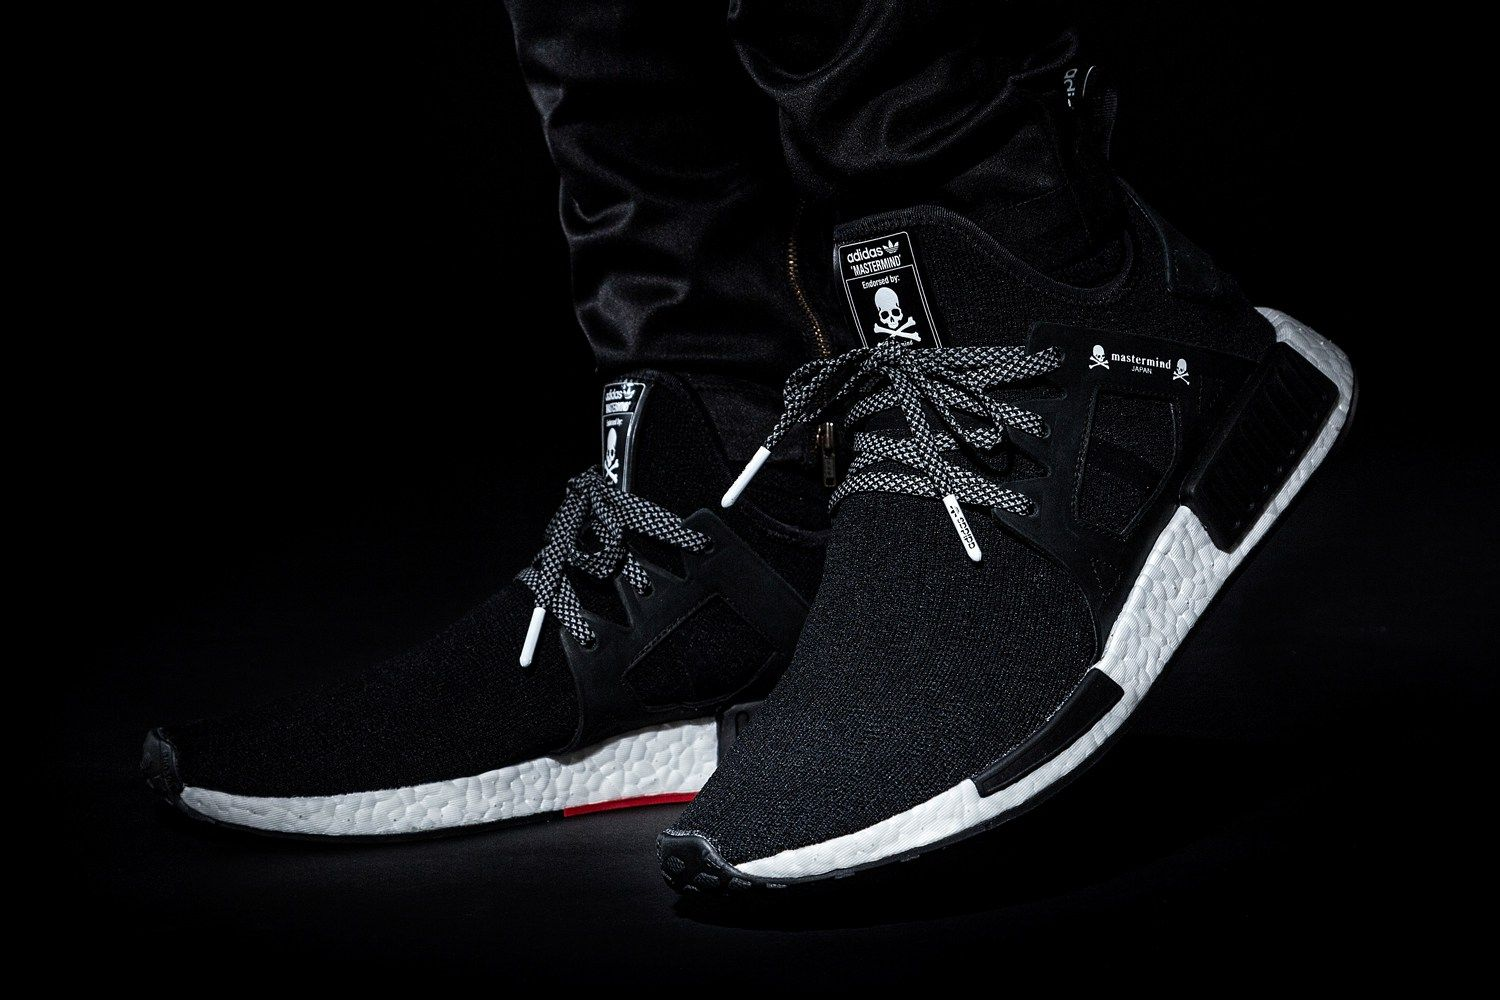 adidas NMD R1 And XR1 Releasing On August 26th